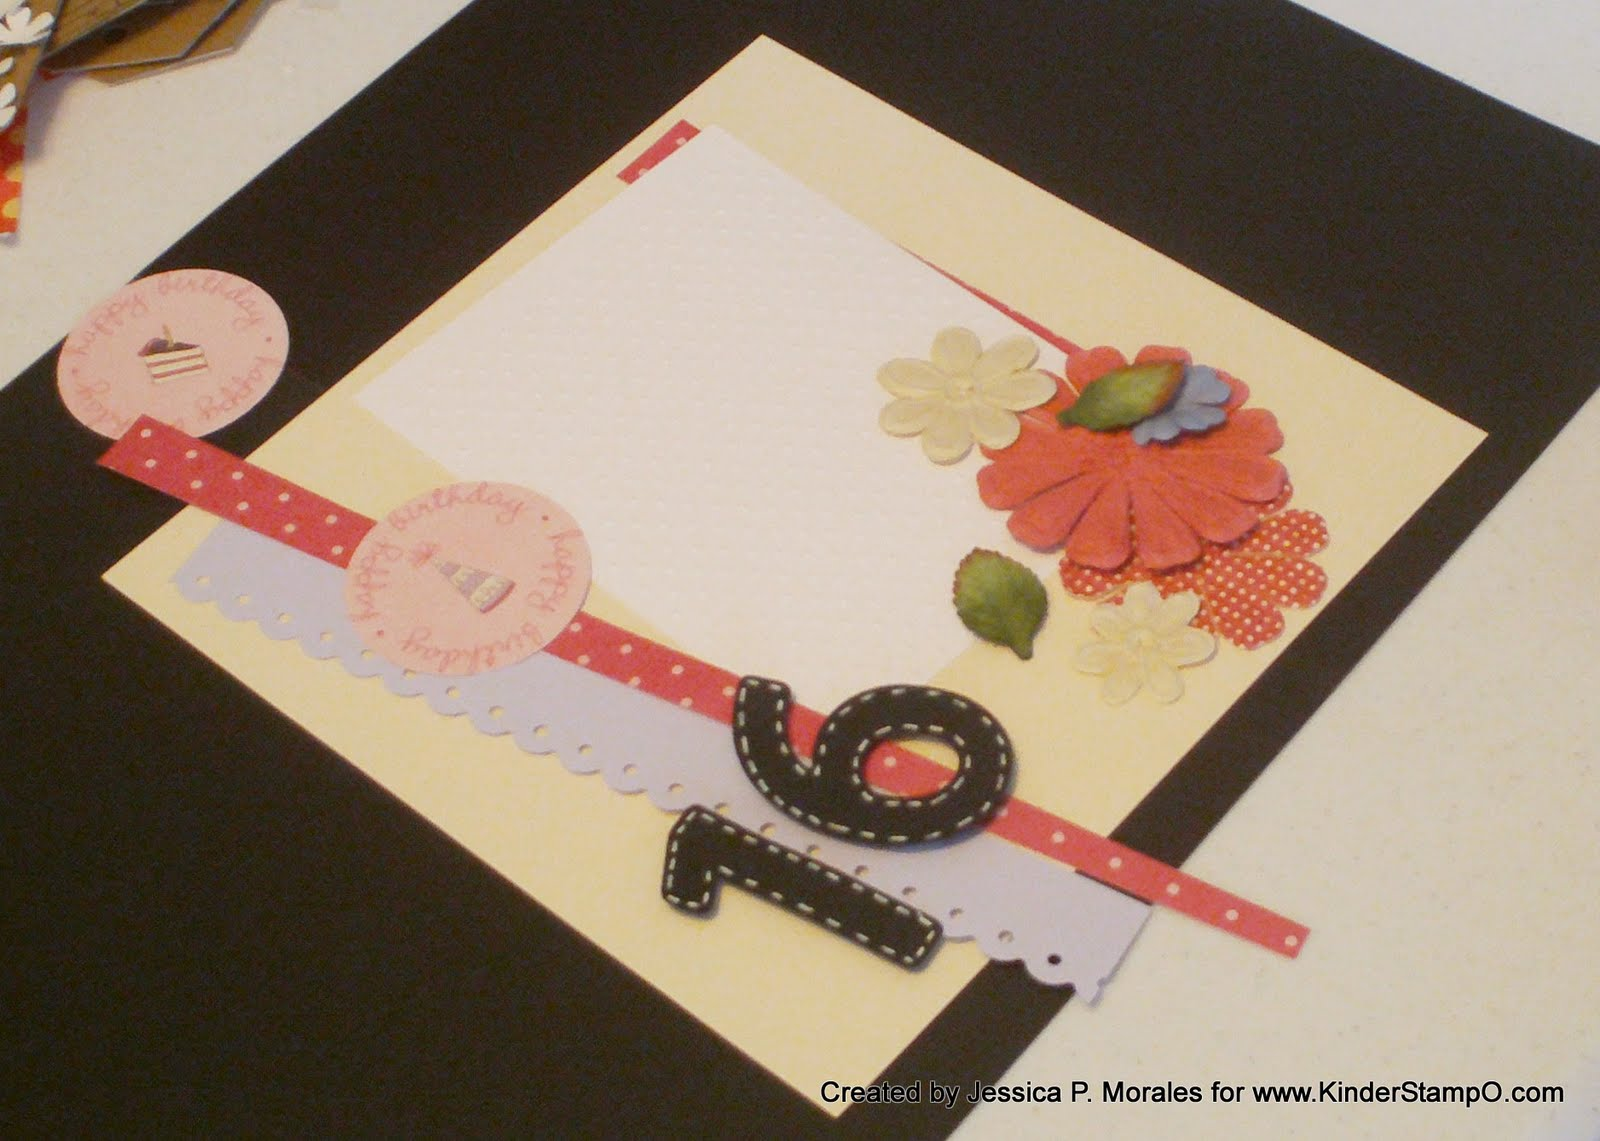 How to scrapbook 8x8 layouts - Happy Crafting